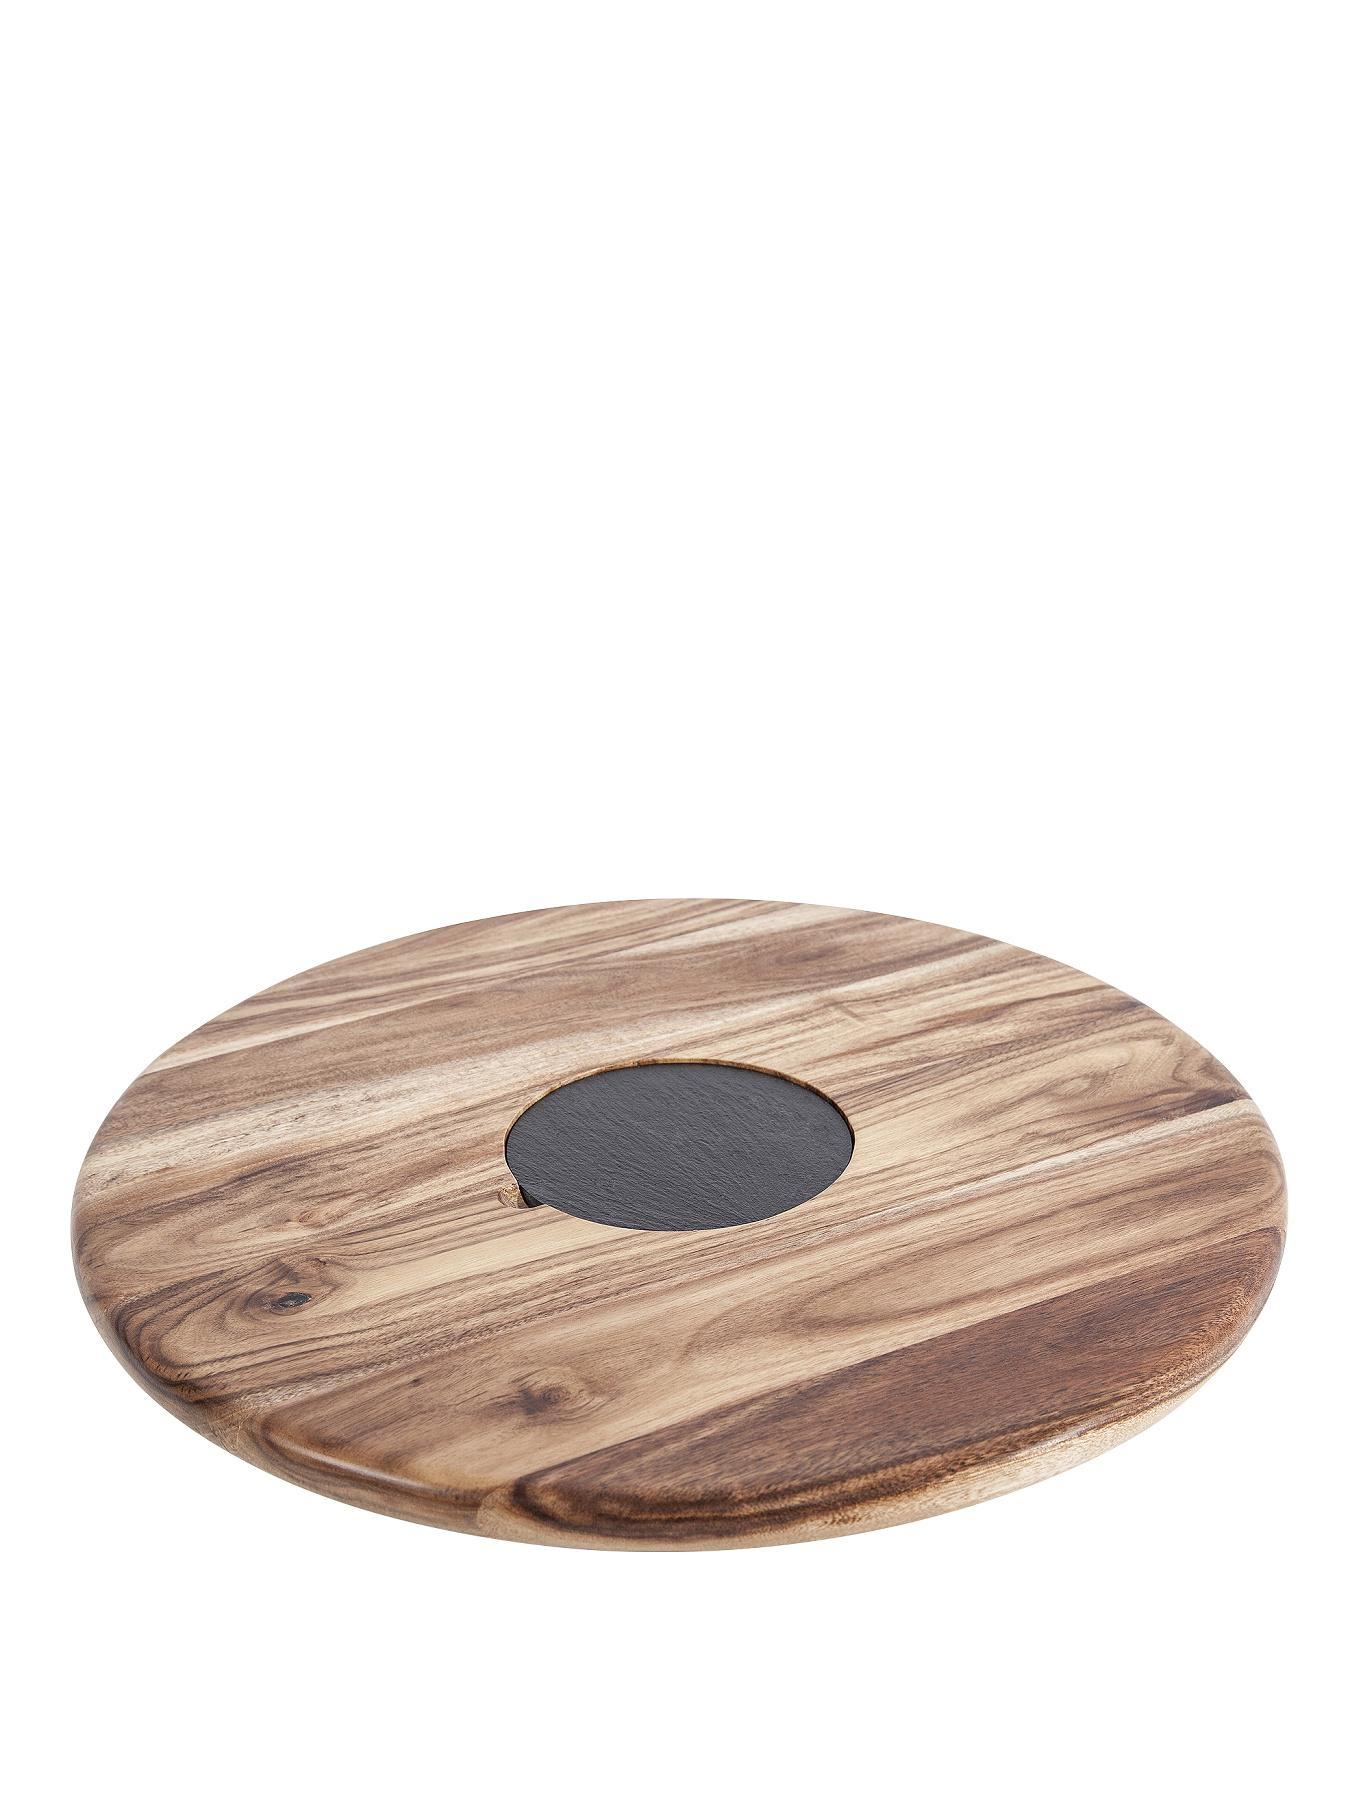 35cm Lazy Susan Acacia with Slate Plate